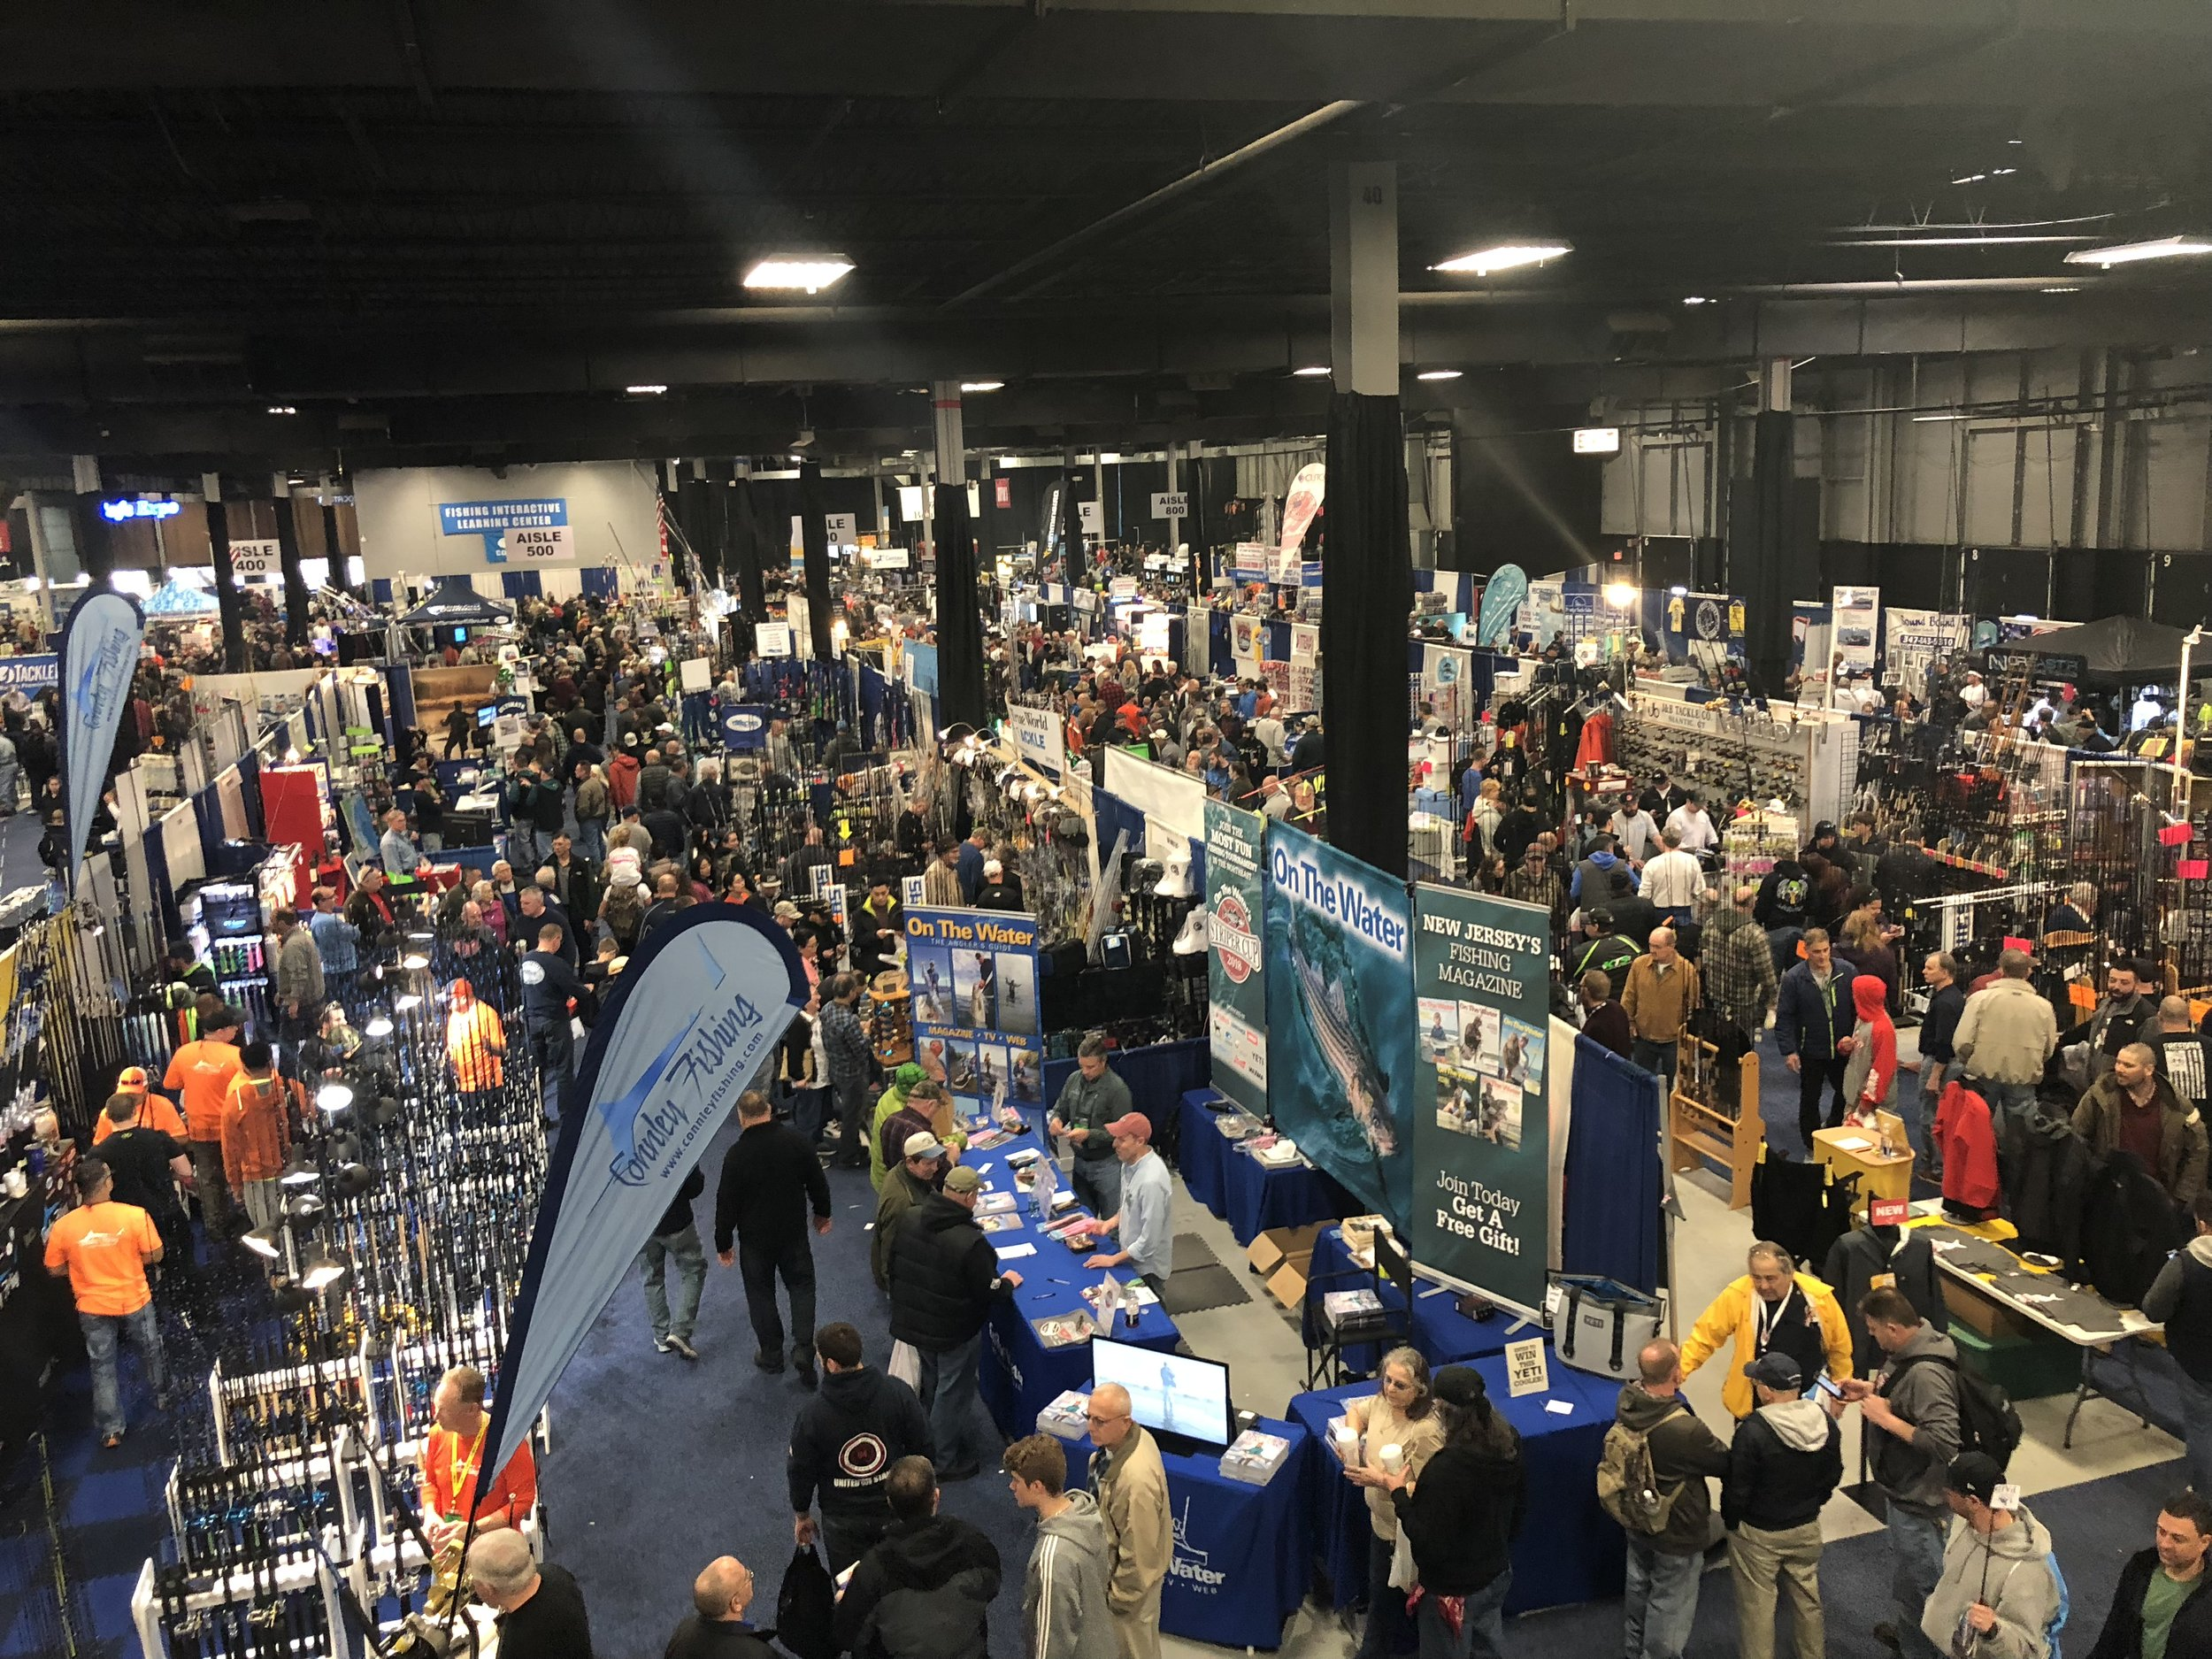 21846-730-2018-Saltwater-Expo.jpeg